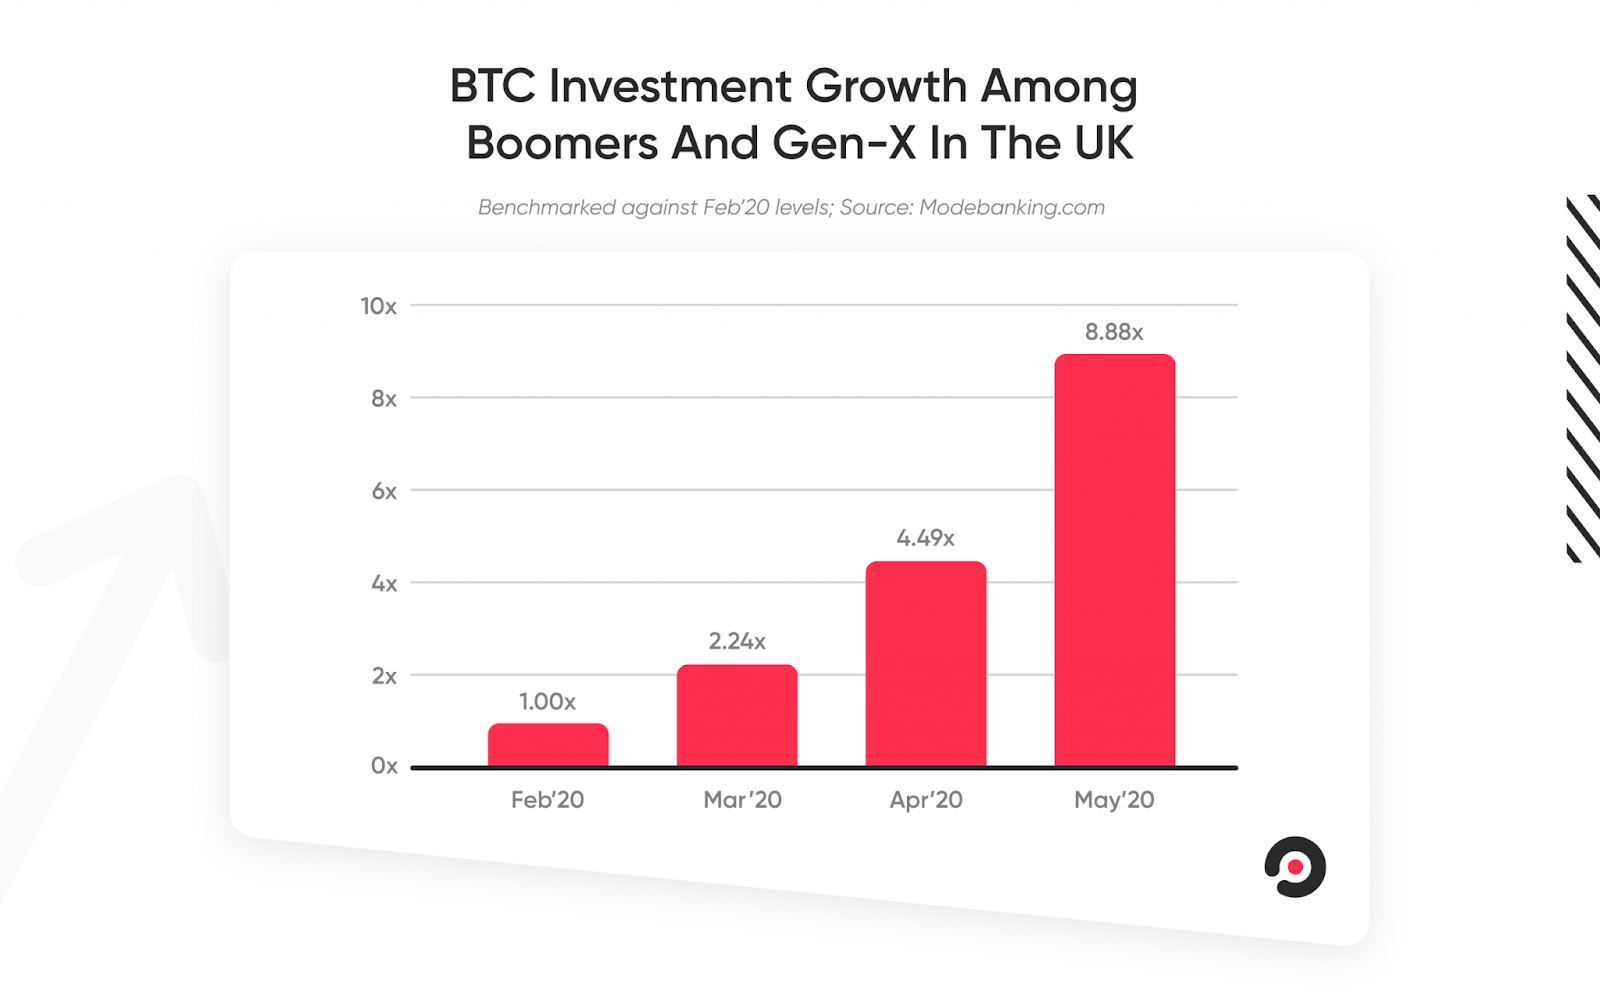 Bitcoin investments by the older generations are growing during COVID-19